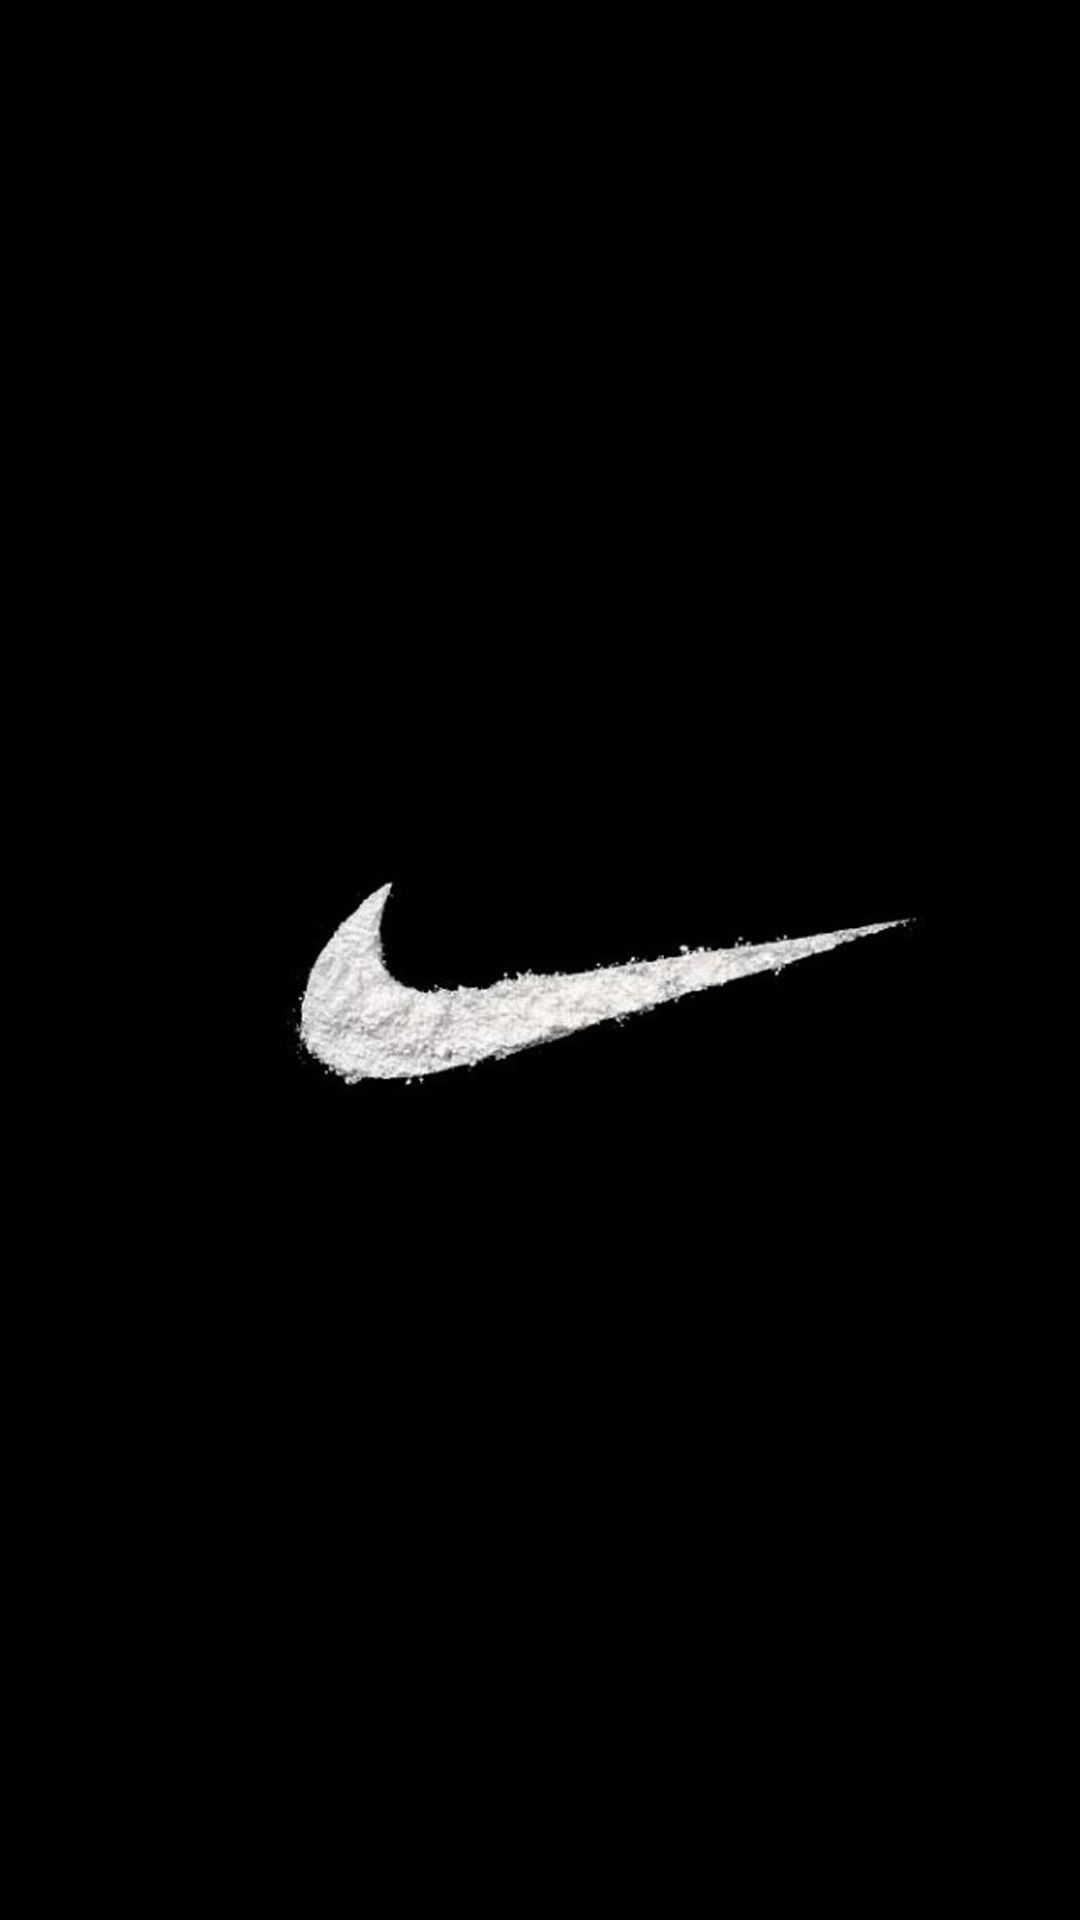 Galaxy Nike Hd Wallpapers Hupages Download Iphone Wallpapers Nike Wallpaper Nike Logo Wallpapers Cool Nike Wallpapers